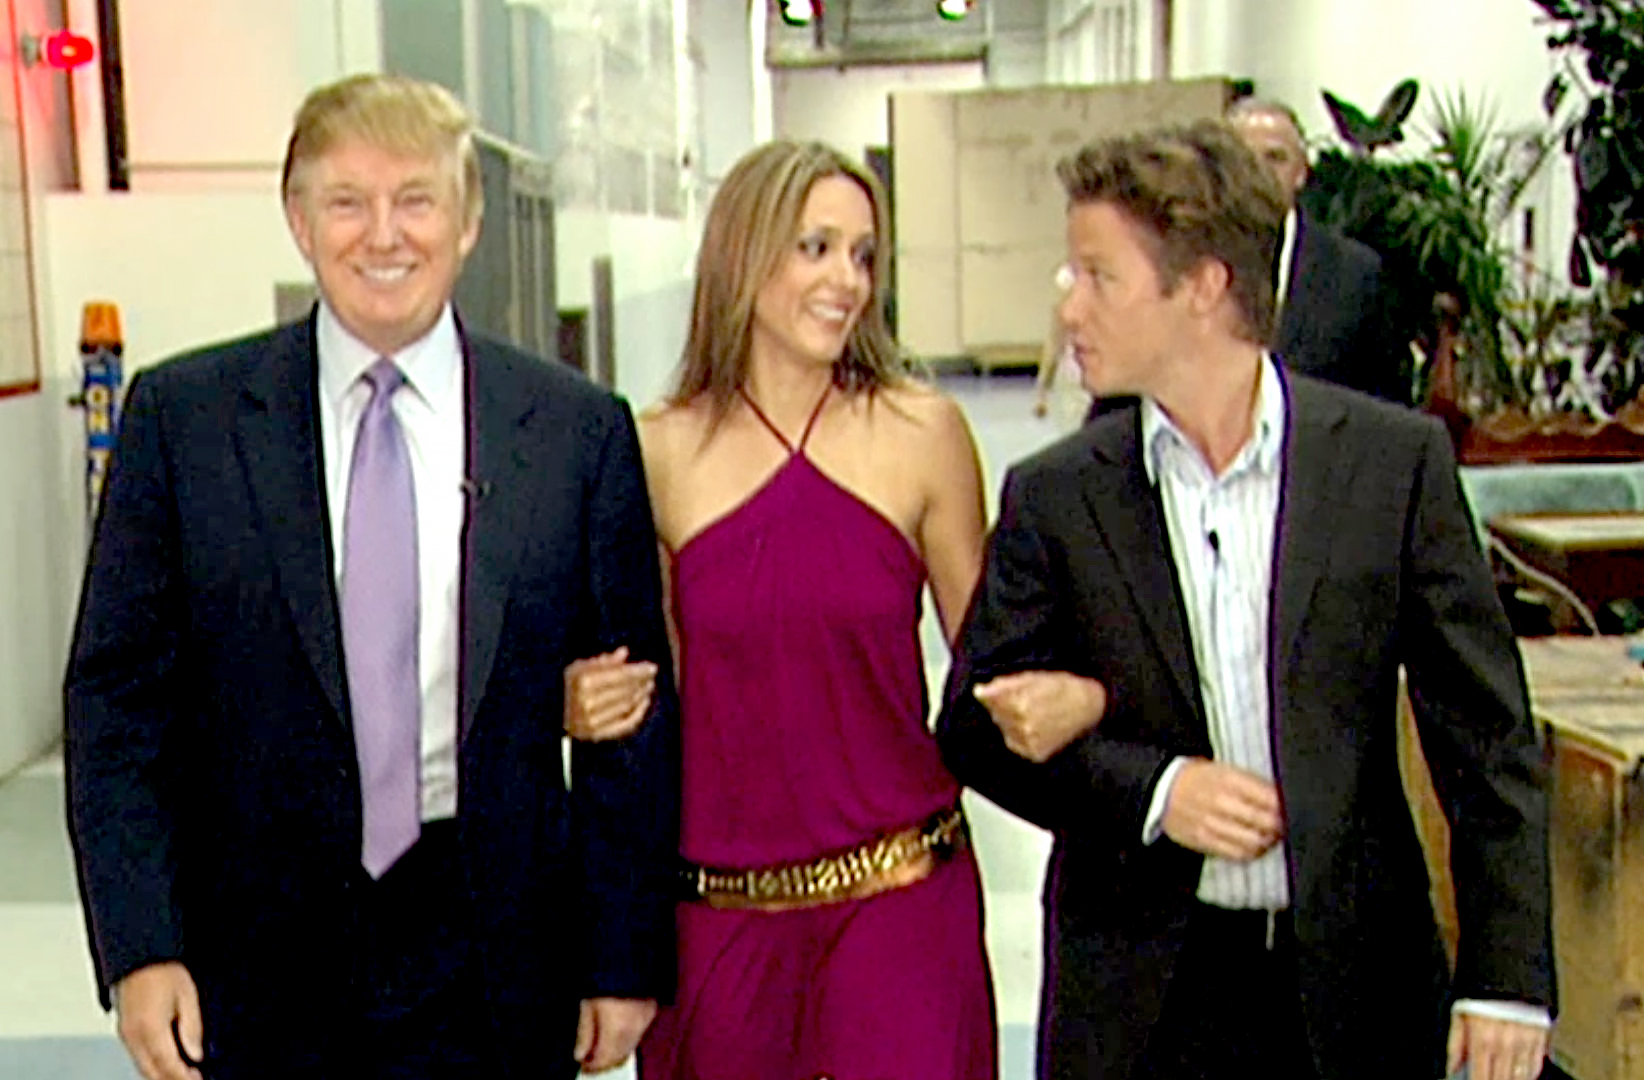 VIDEO FRAME GRAB: In this 2005 frame from video, Donald Trump prepares for an appearance on 'Days of Our Lives' with actress Arianne Zucker (center). He is accompanied to the set by Access Hollywood host Billy Bush.